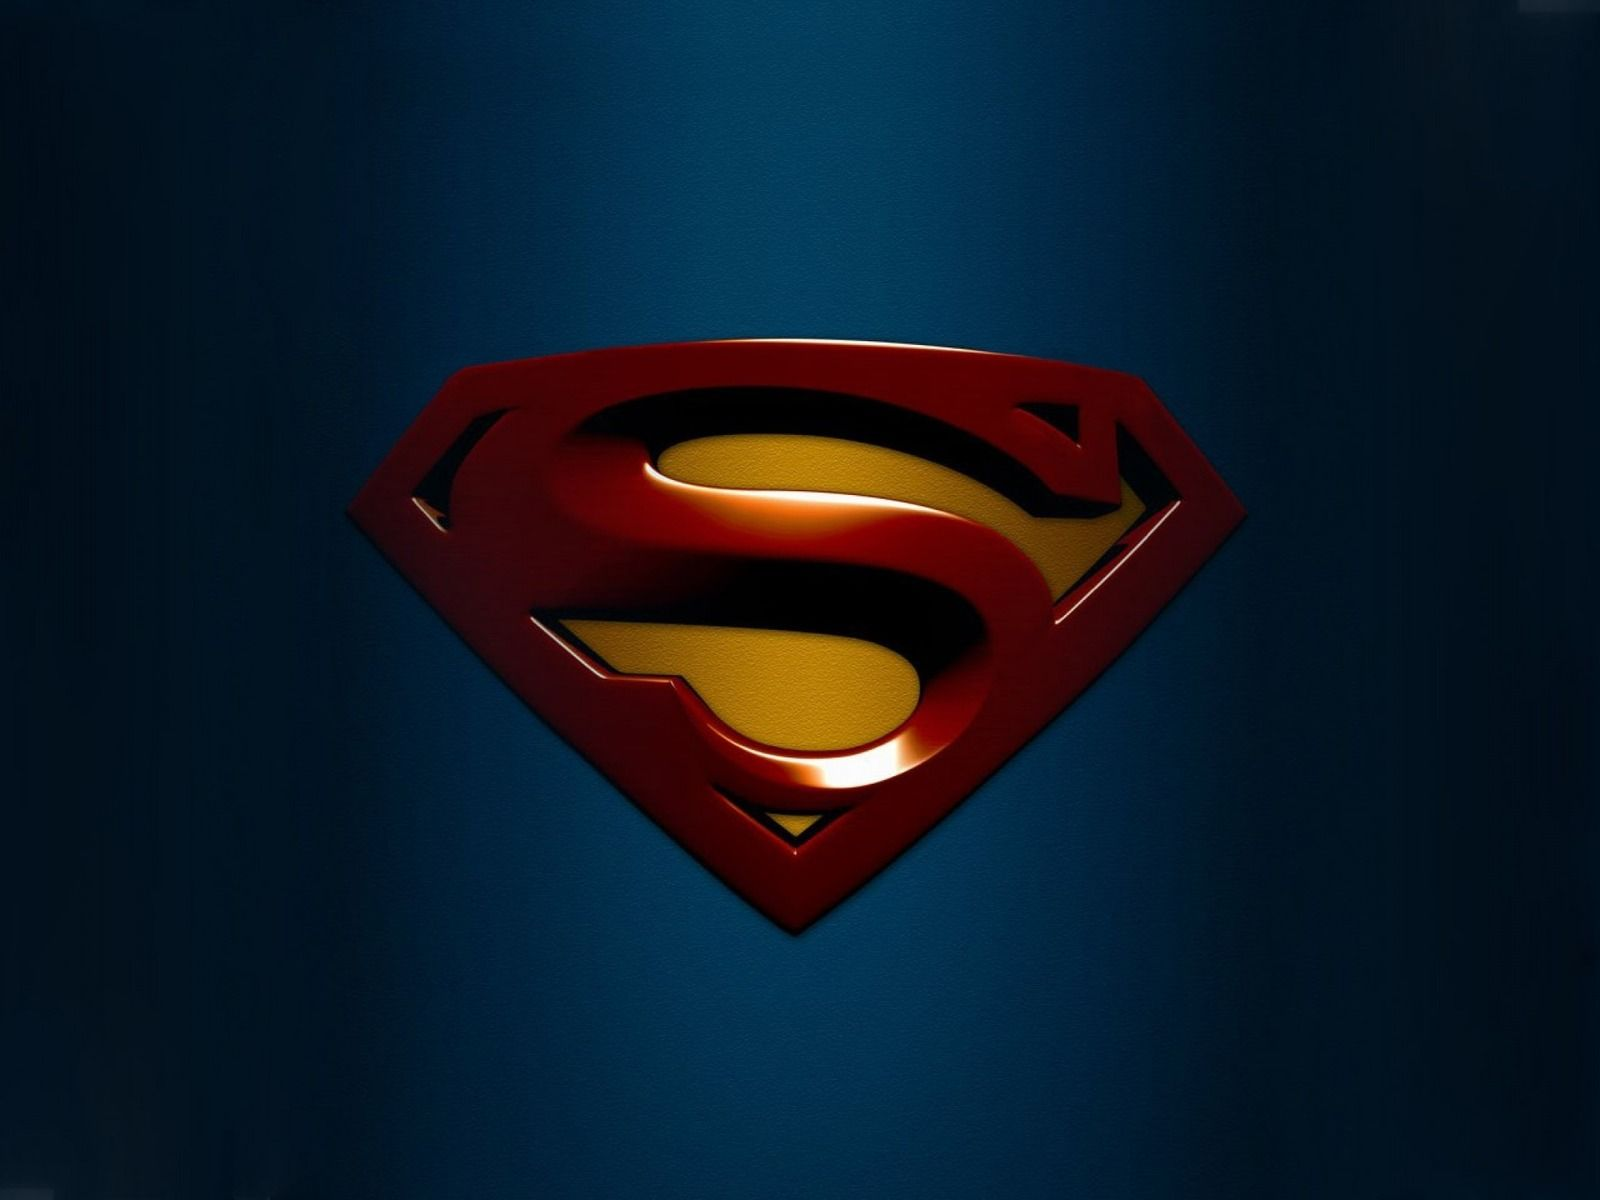 Superman Superman Quotes Superman Hd Wallpaper Superman Wallpaper